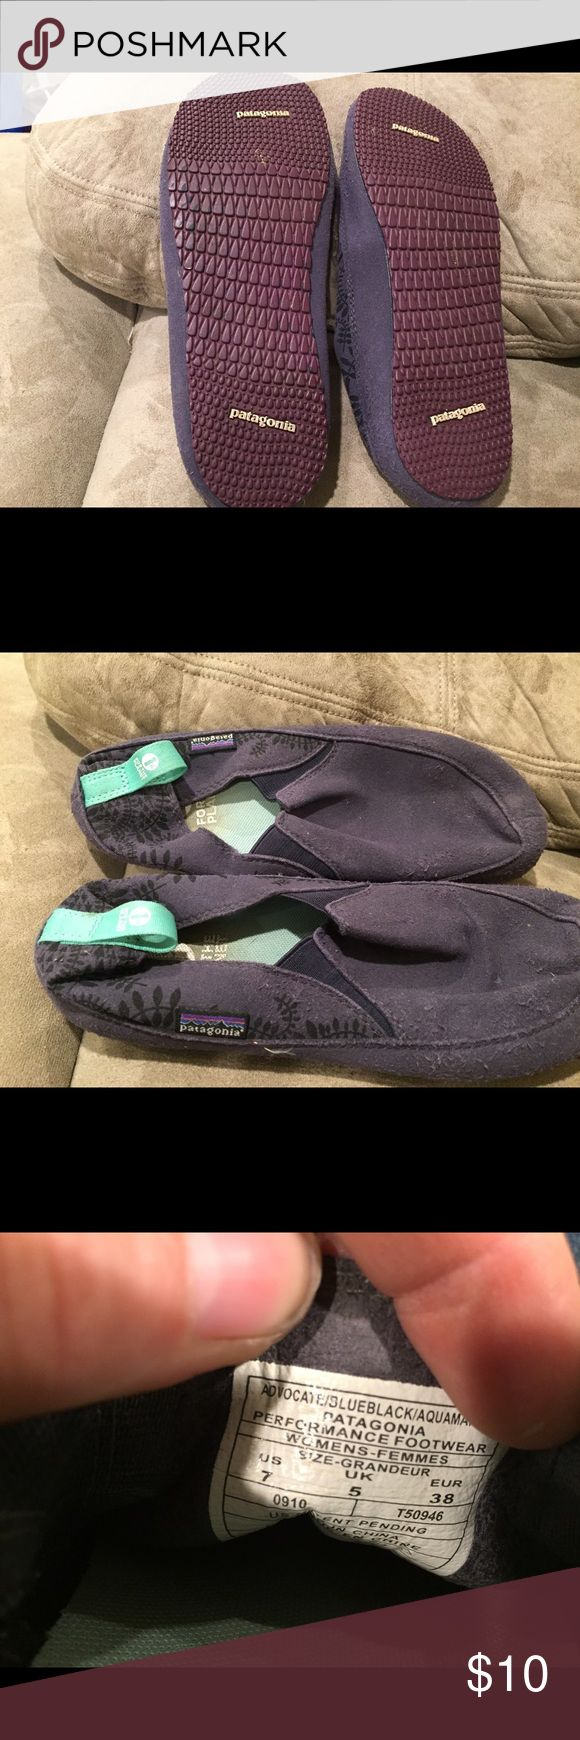 Patagonia shoes Patagonia slip on shoes. Wear and tear on the top but the bottoms are in great condition. Price reflects. Patagonia Shoes